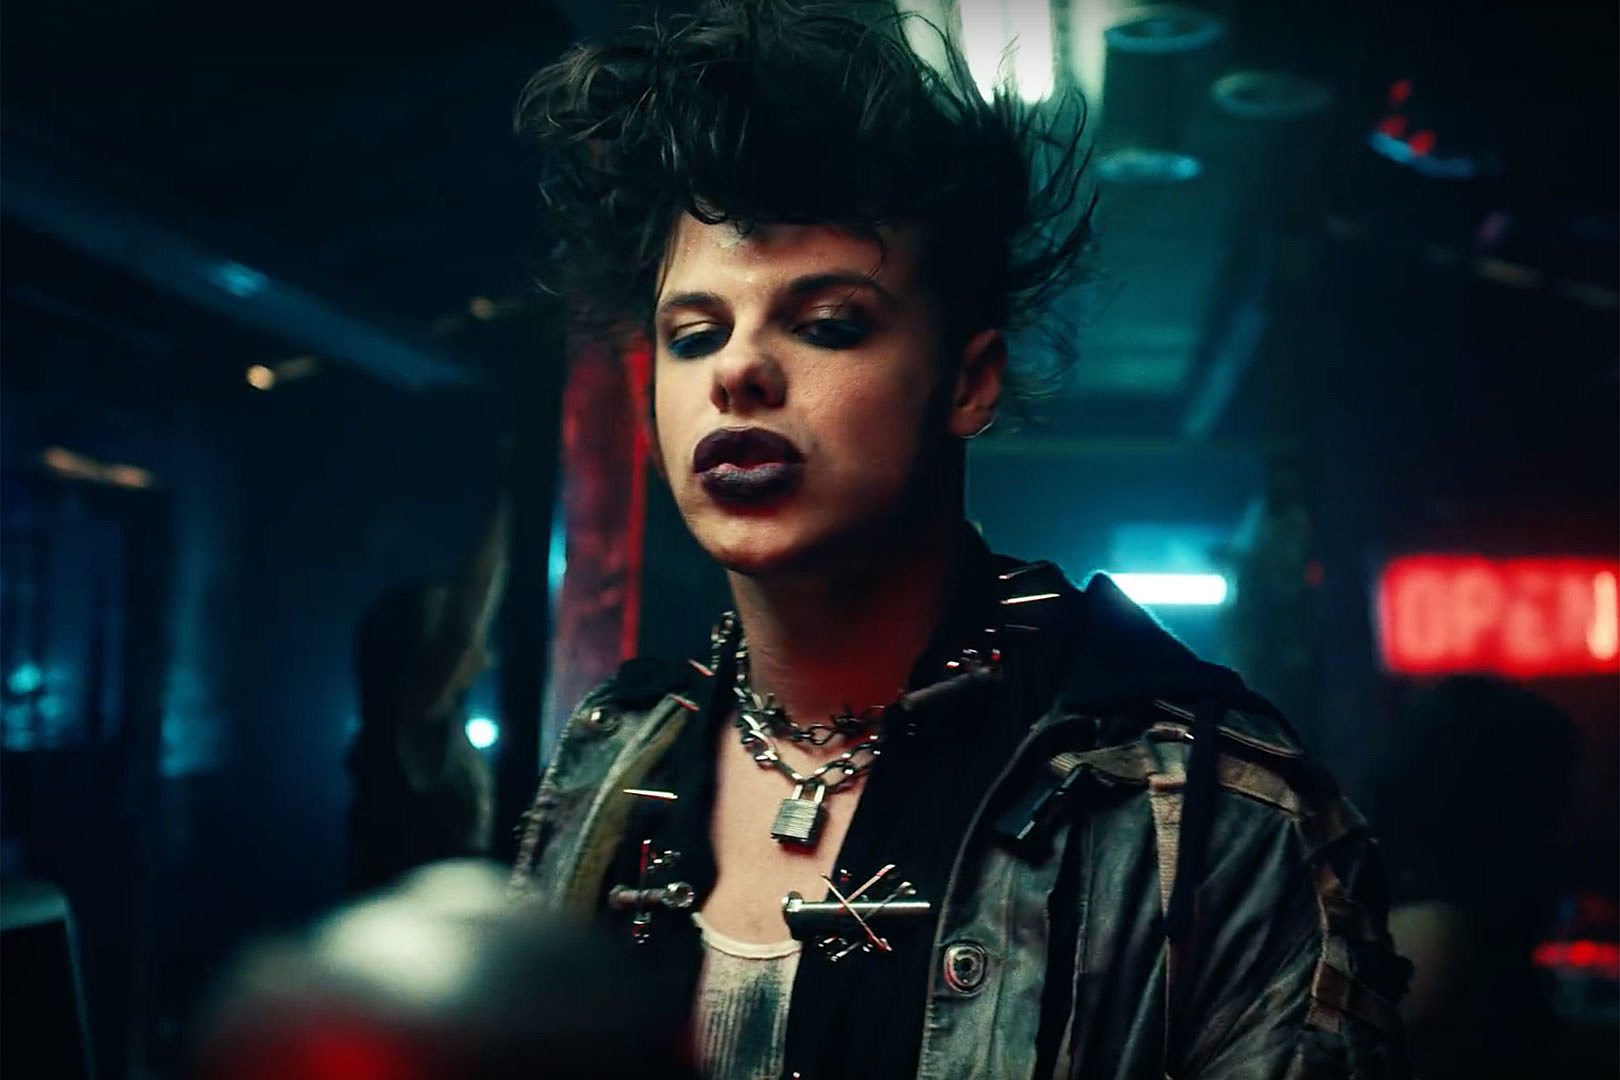 Yungblud Joins Marshmello + Blackbear in Rebellious Anthem 'Tongue Tied'